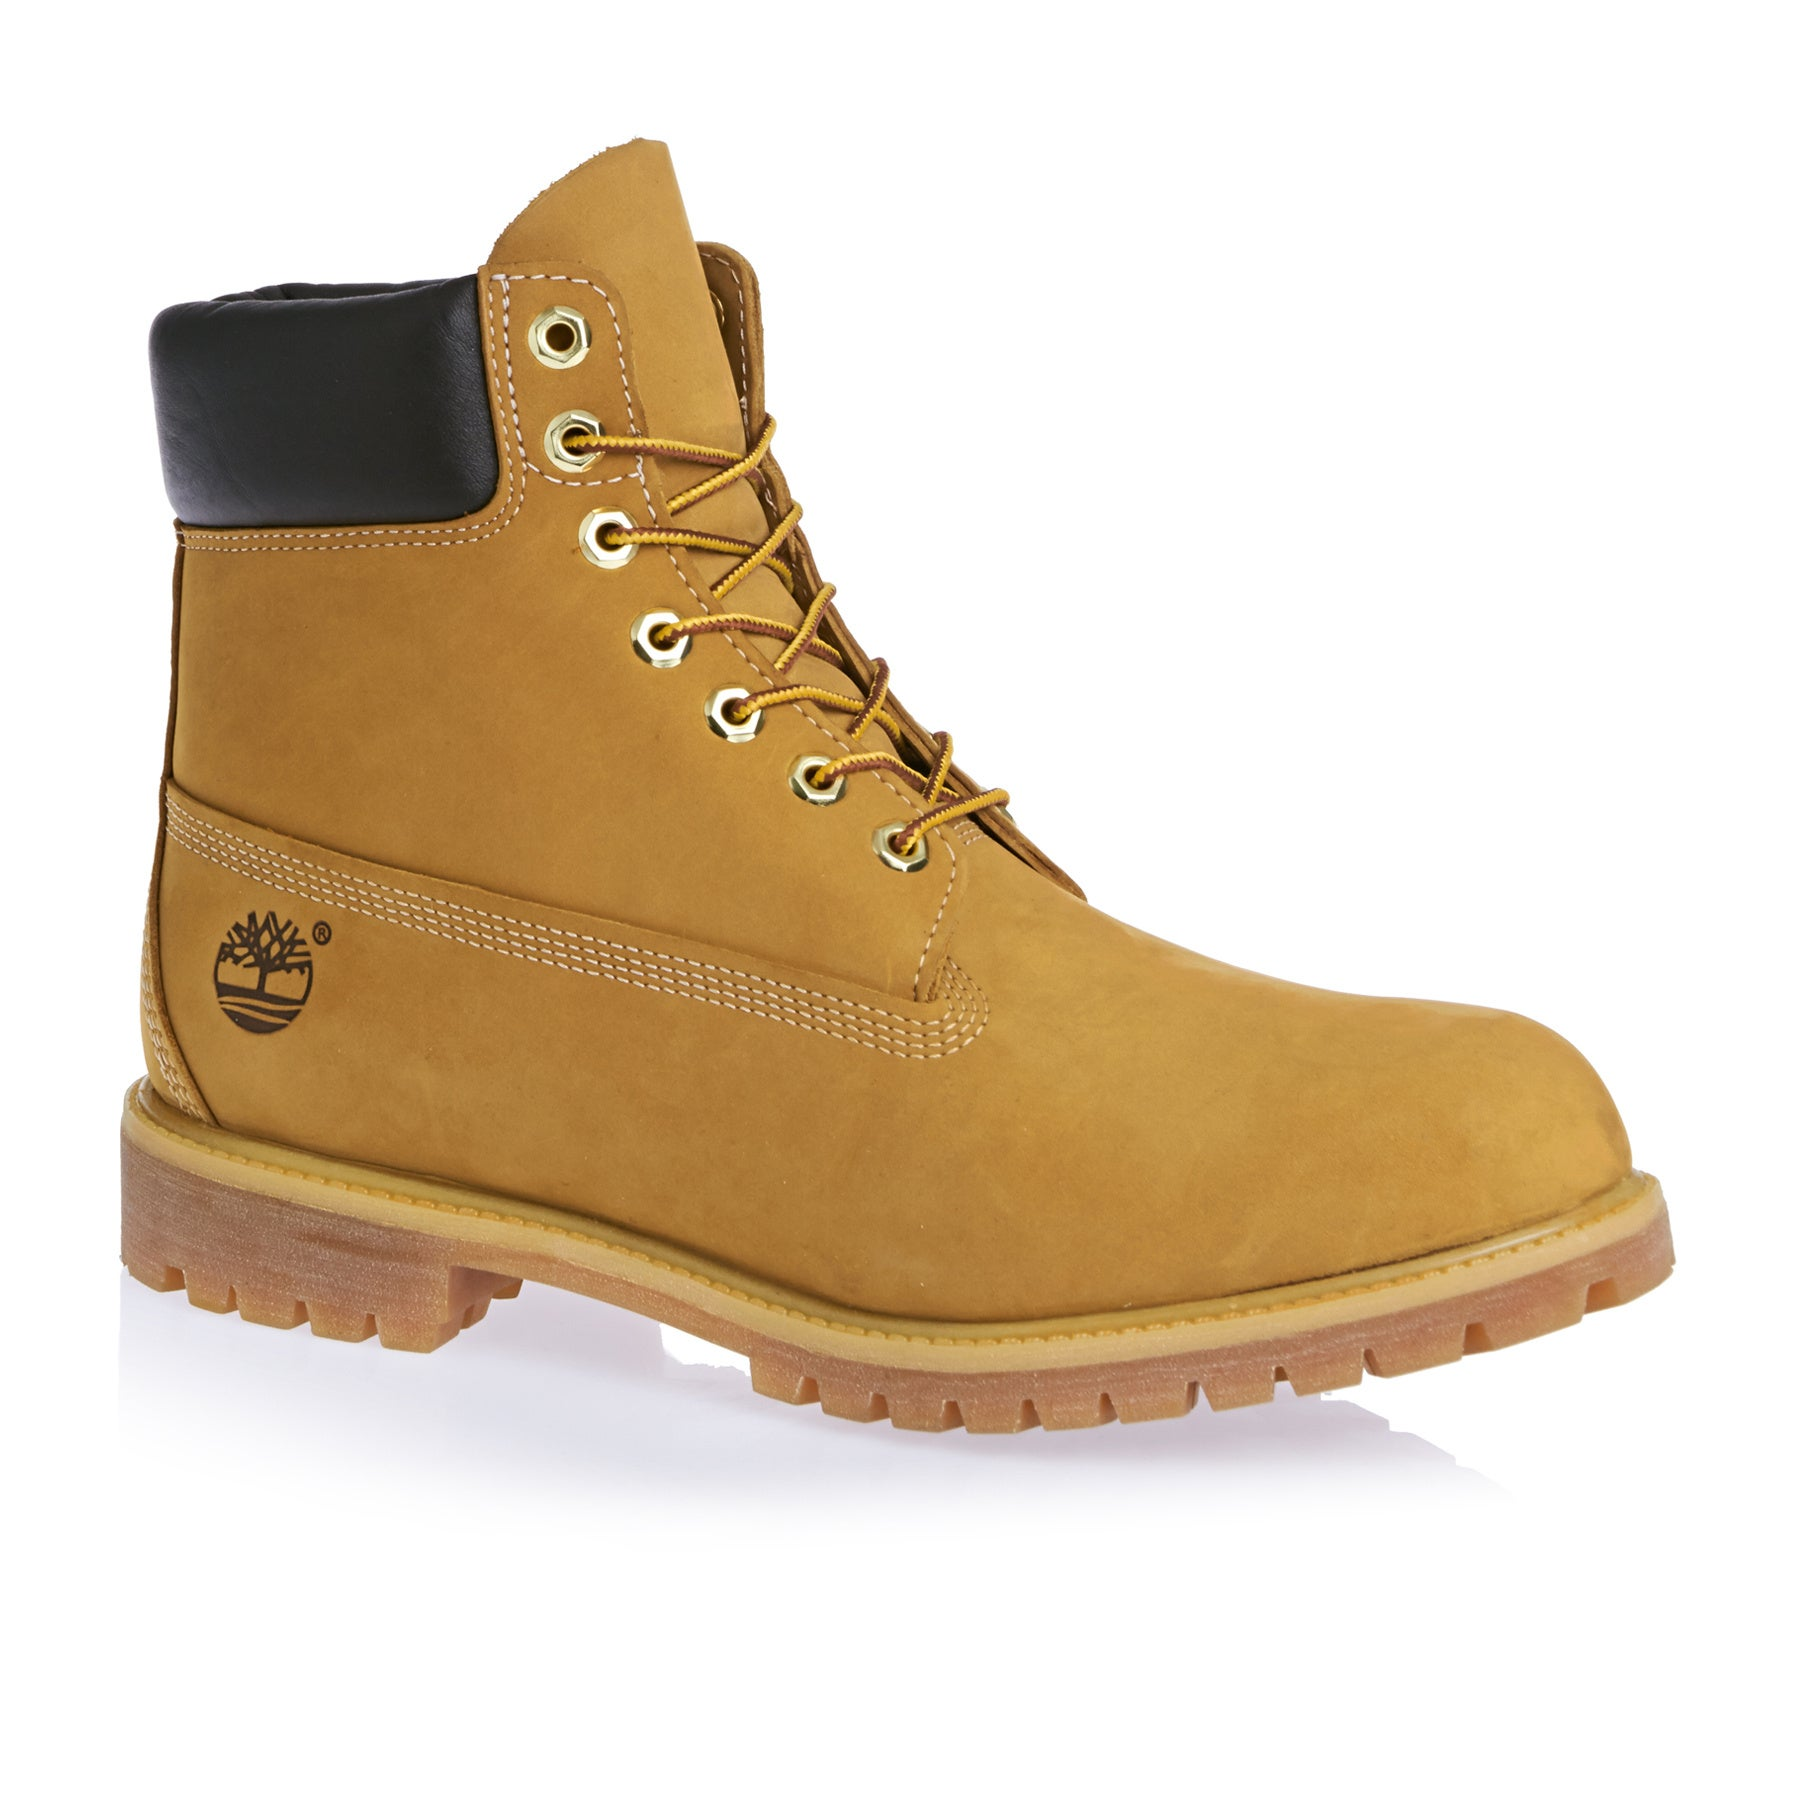 ae412874001 Timberland Icon 6in Premium Waterproof Boots | Free Delivery Options